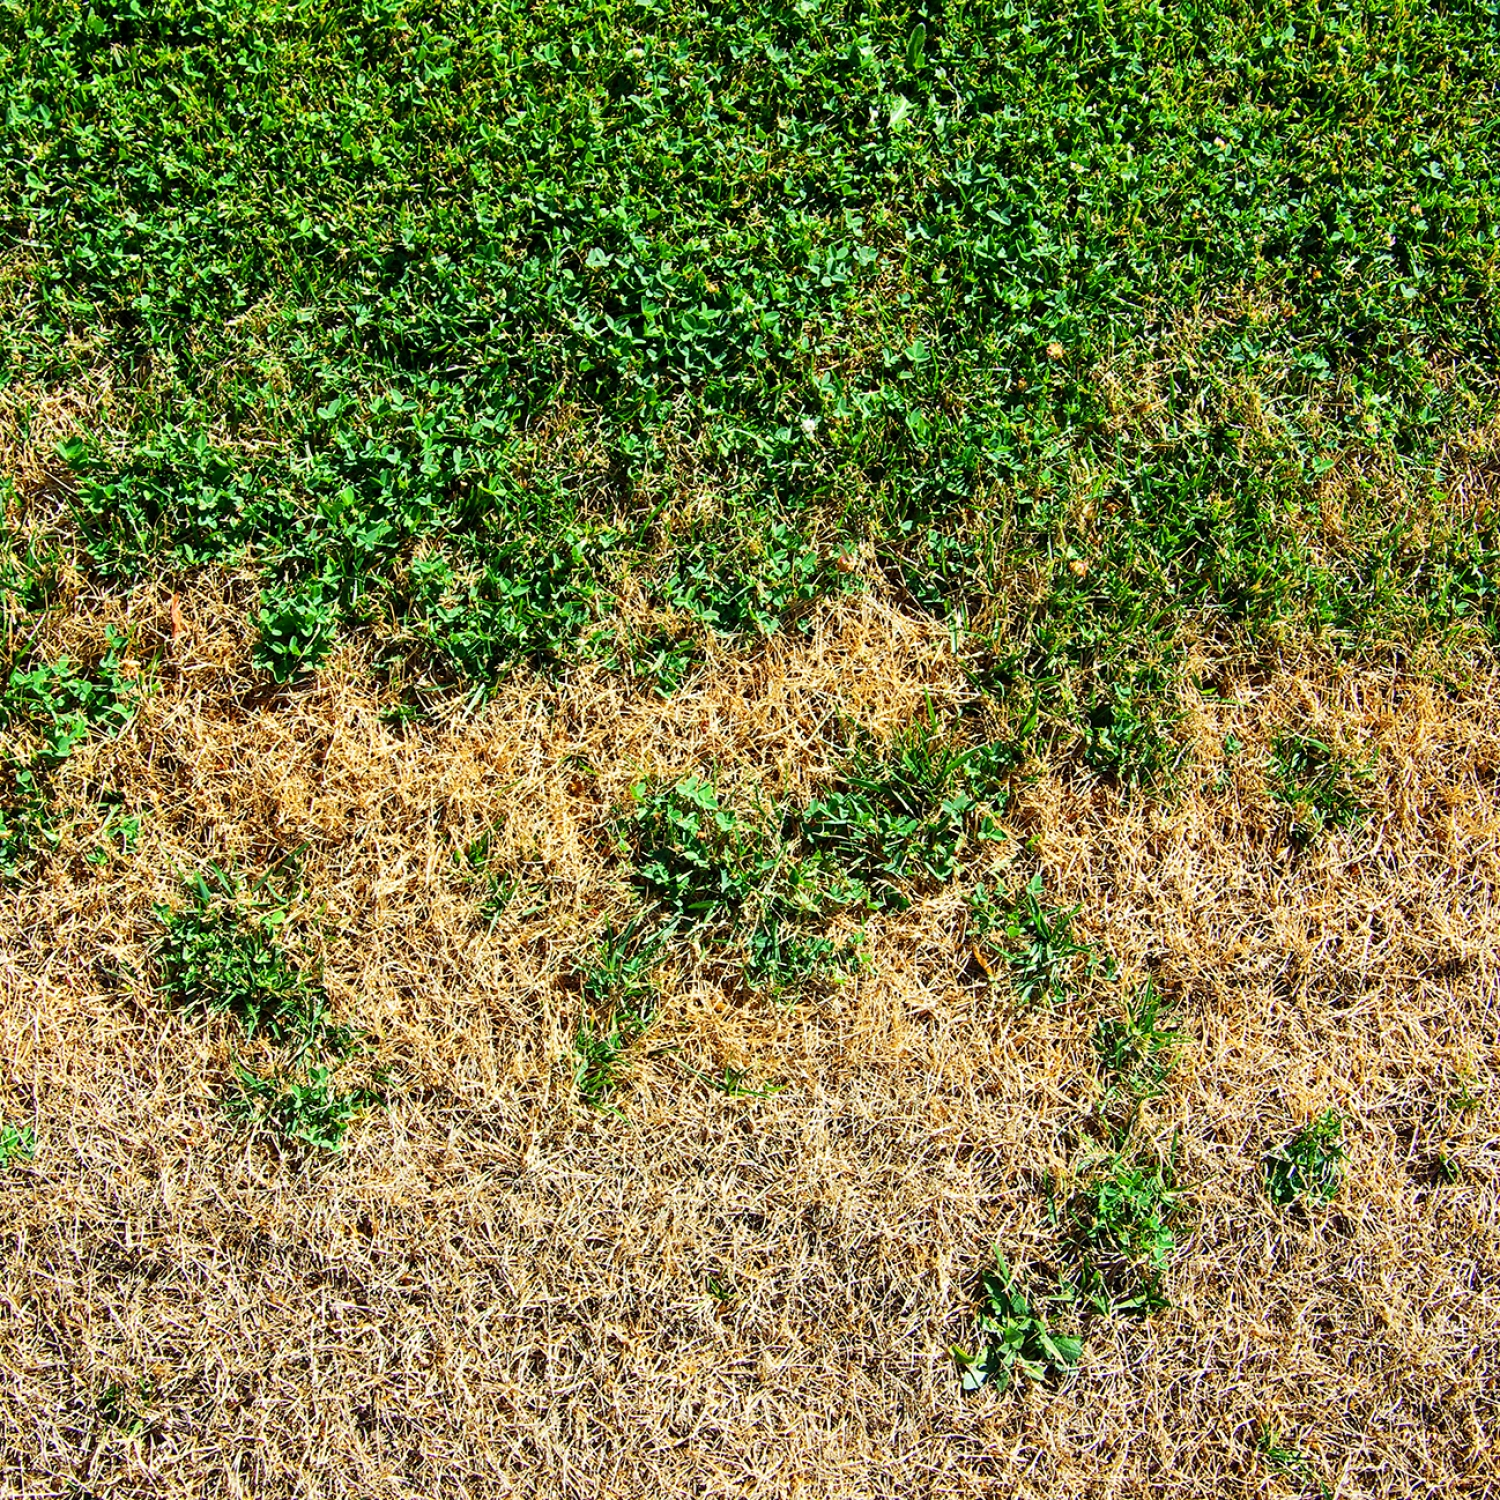 A crunchy, brown lawn thirsty for water